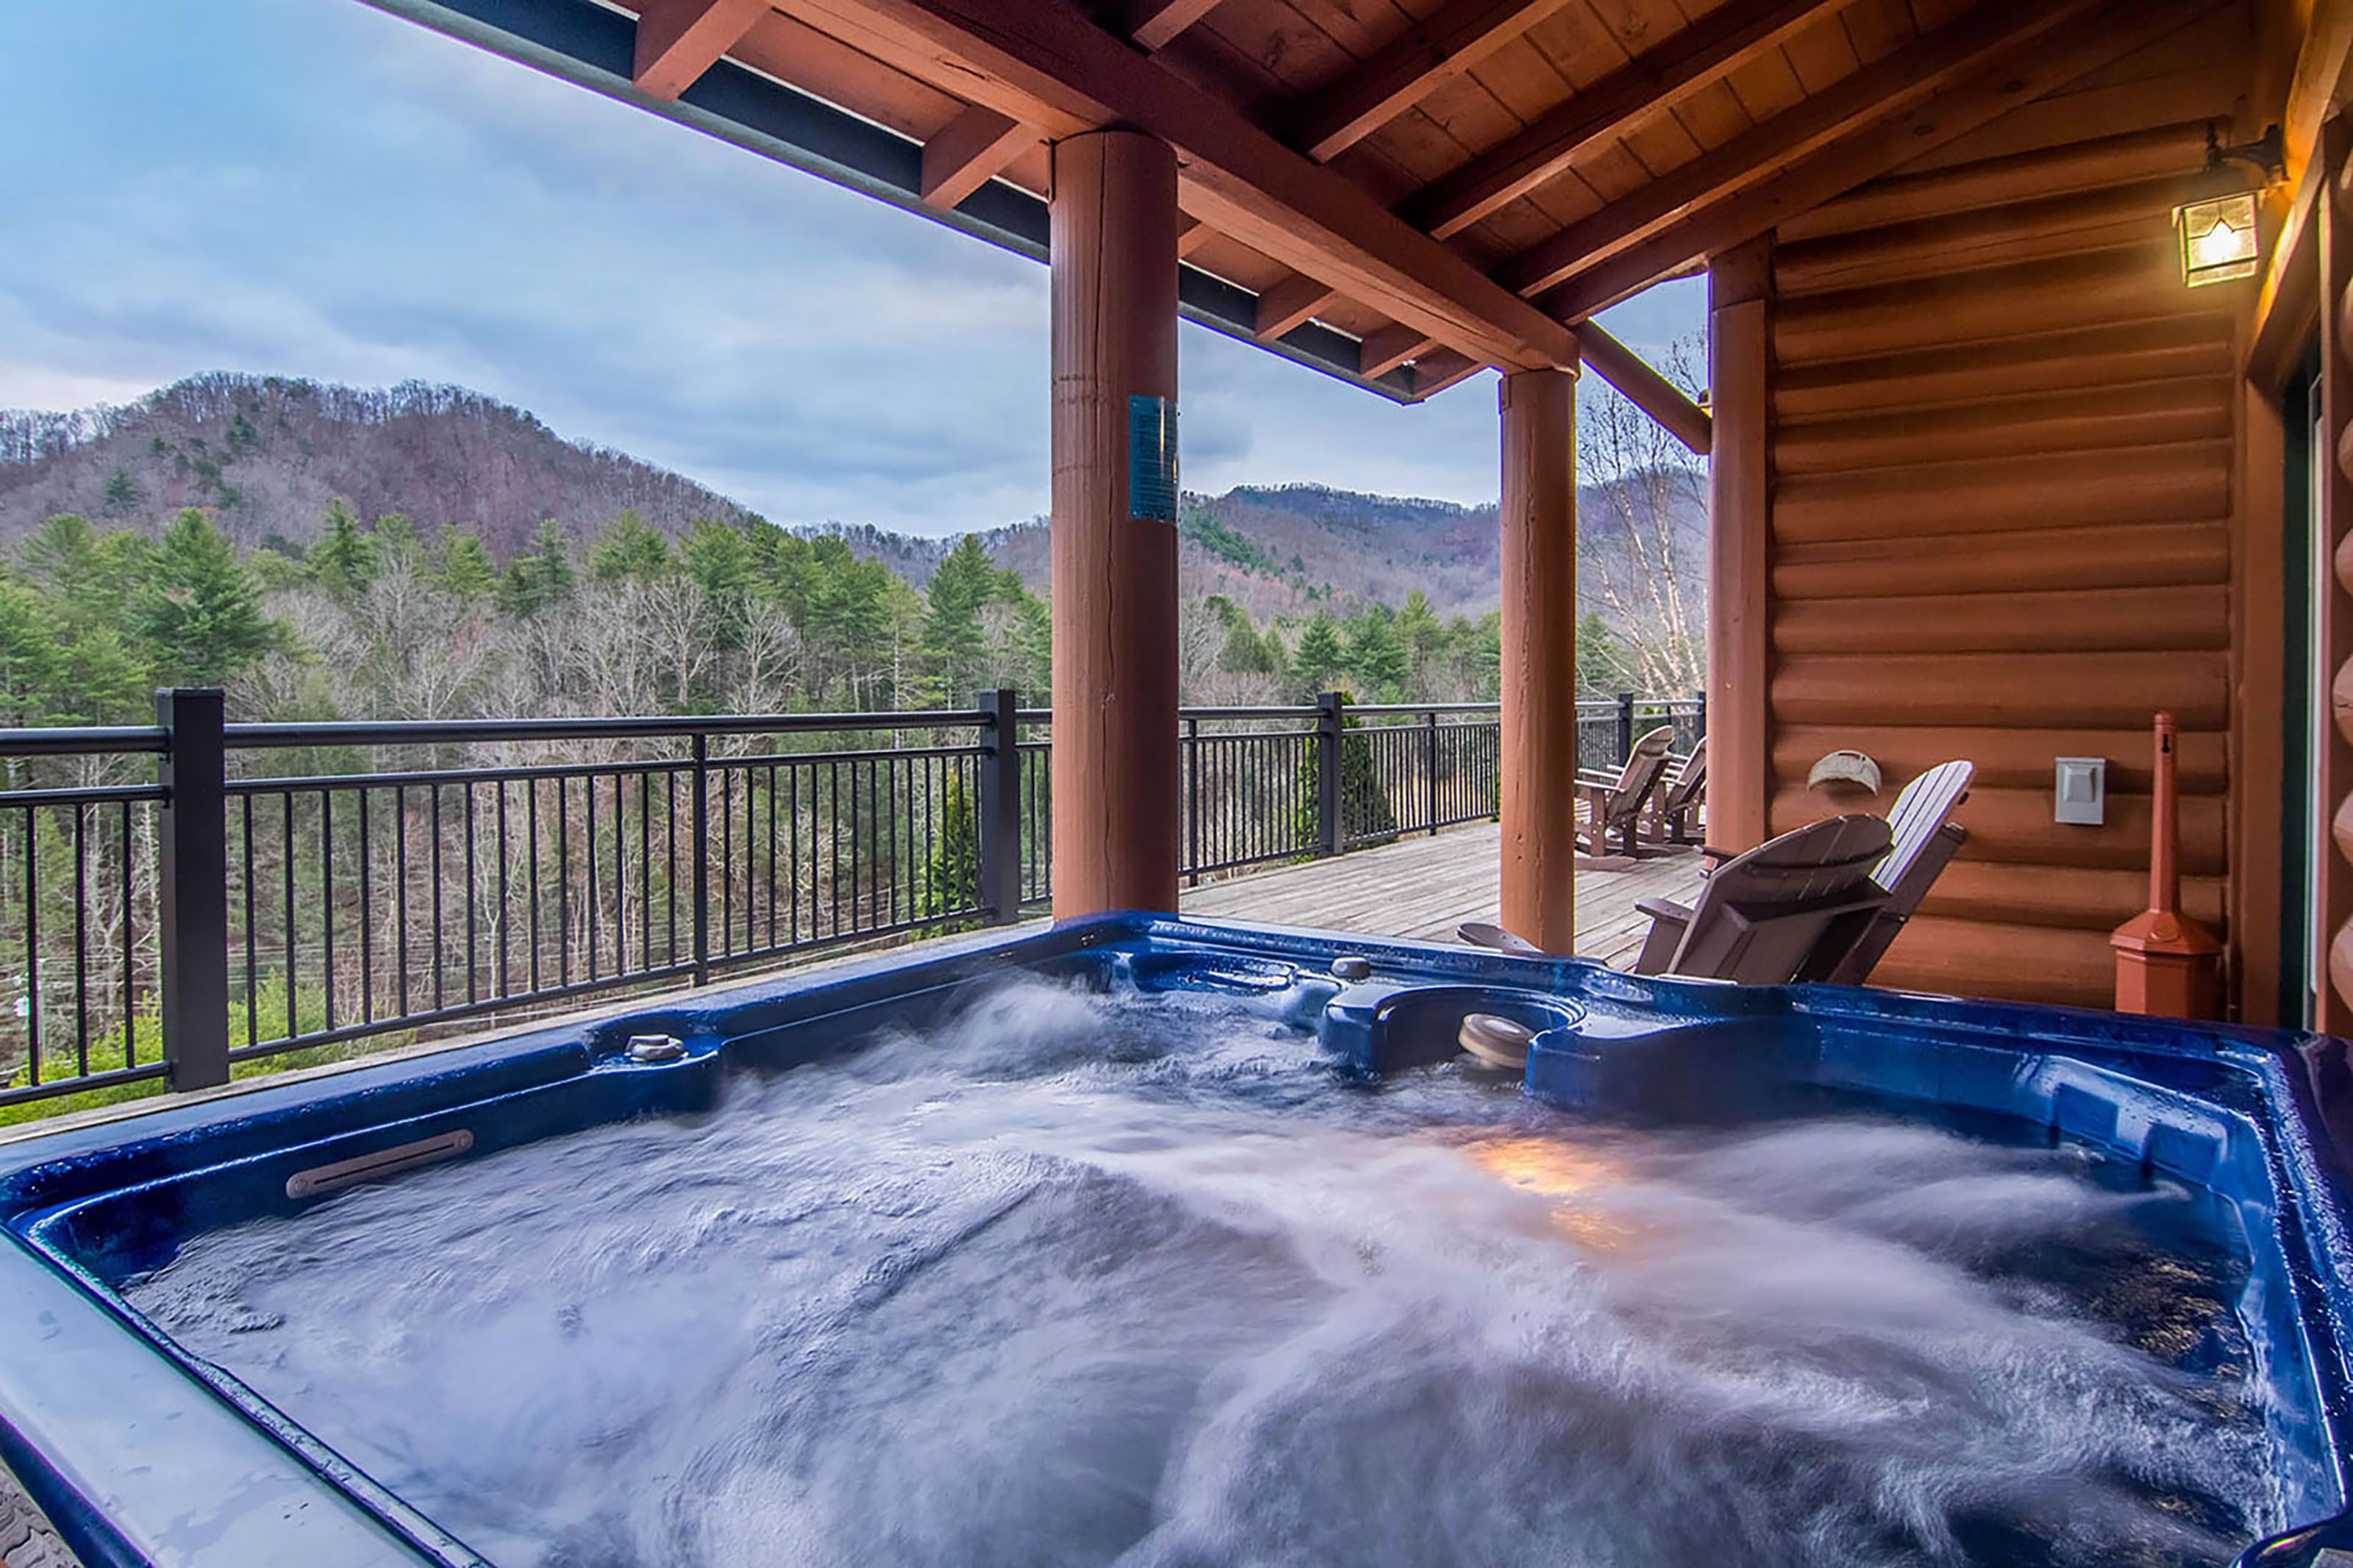 tn luxury plans room house secluded with indoor cabins gatlinburg georgia mountain pools pool valley in bedroom pigeon bedrooms forge wears private and cabin curtain rentals smoky related theater